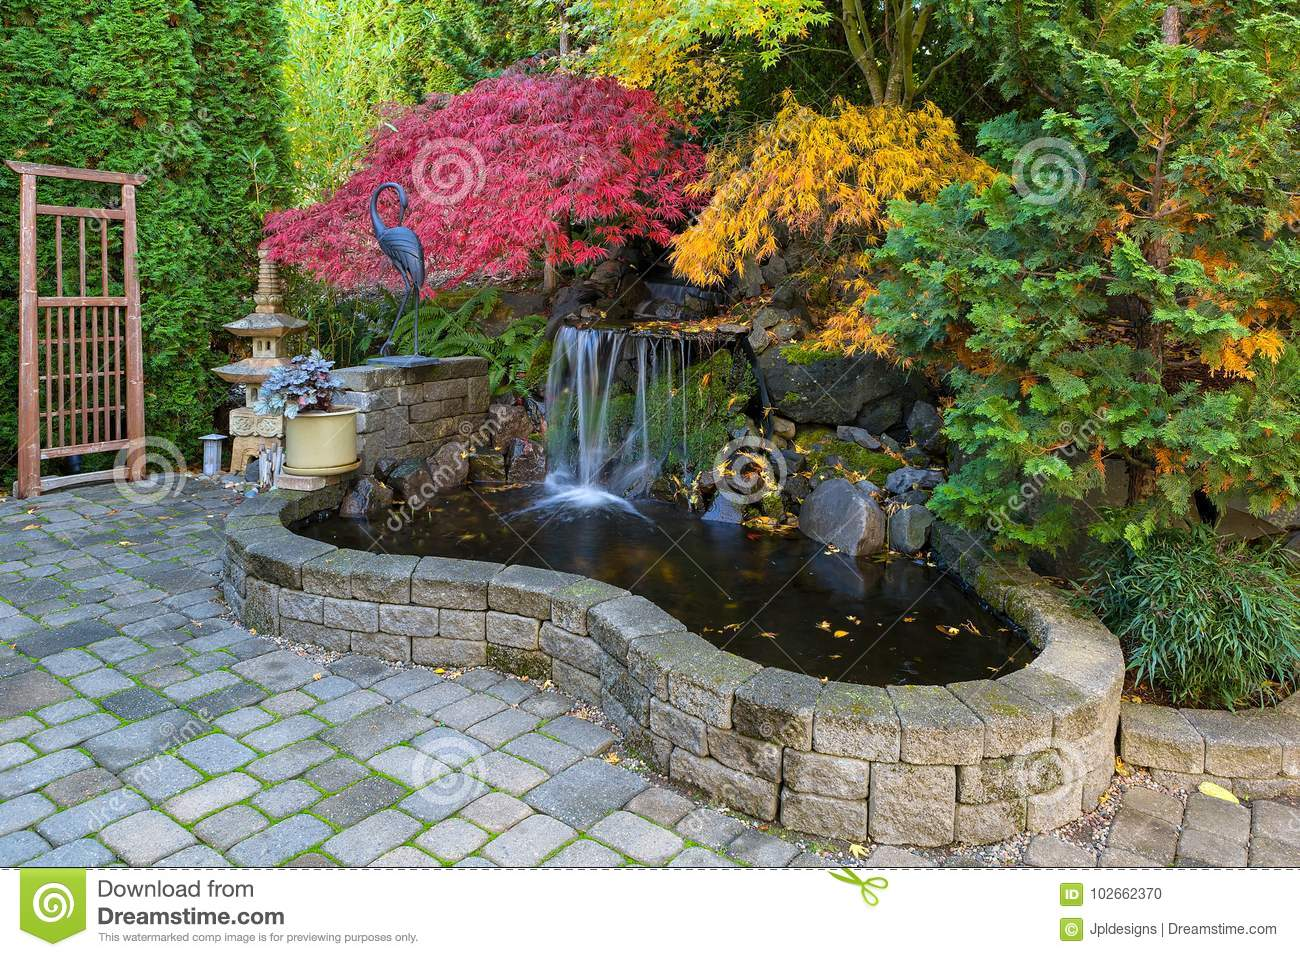 Image of: Waterfall Pond In Home Backyard During Fall Season Stock Photo Image Of Japanese Coralbell 102662370